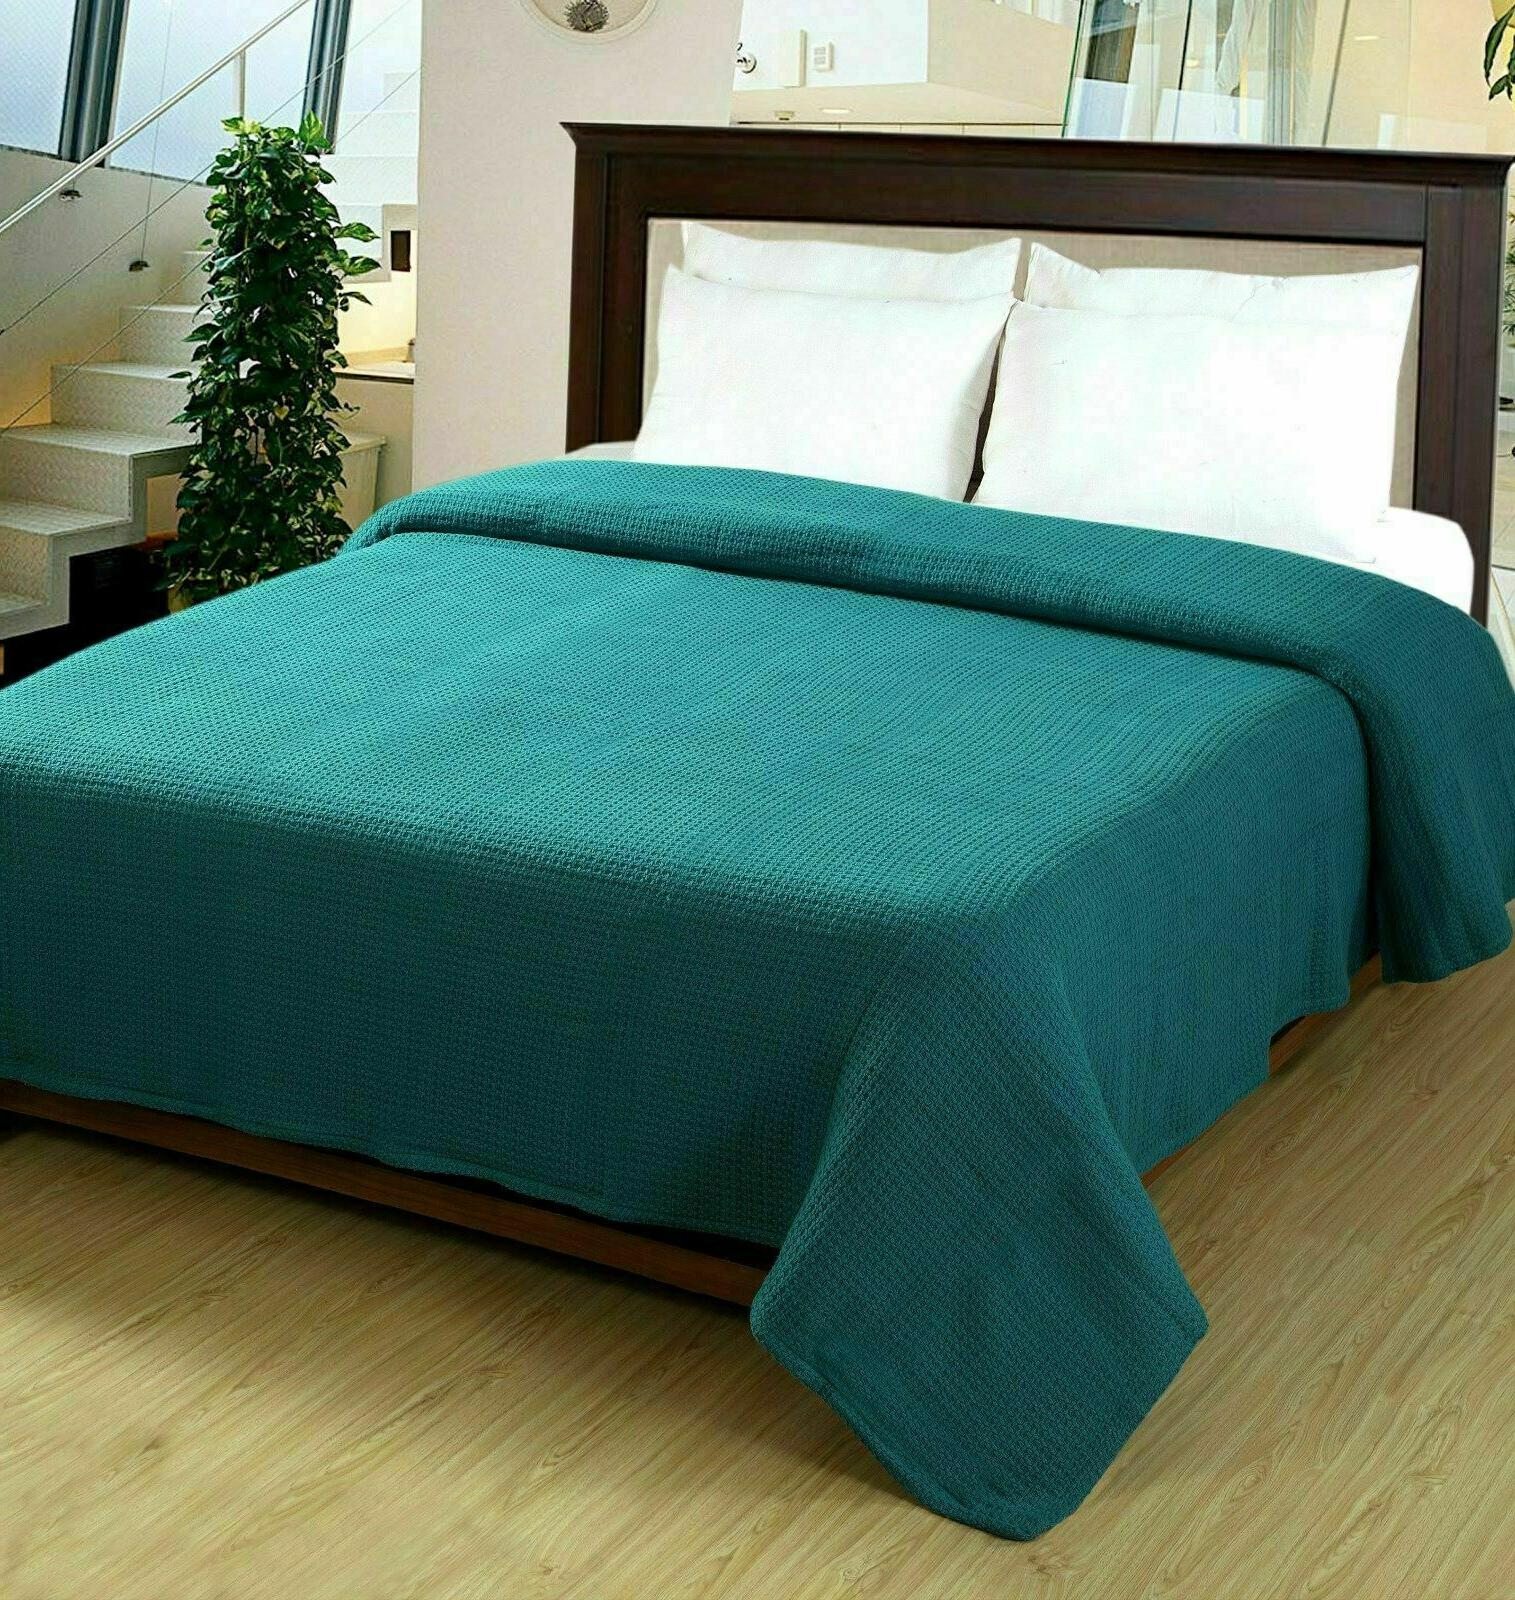 100% Soft Thermal Blanket Lightweight Comfortable Cozy Warm